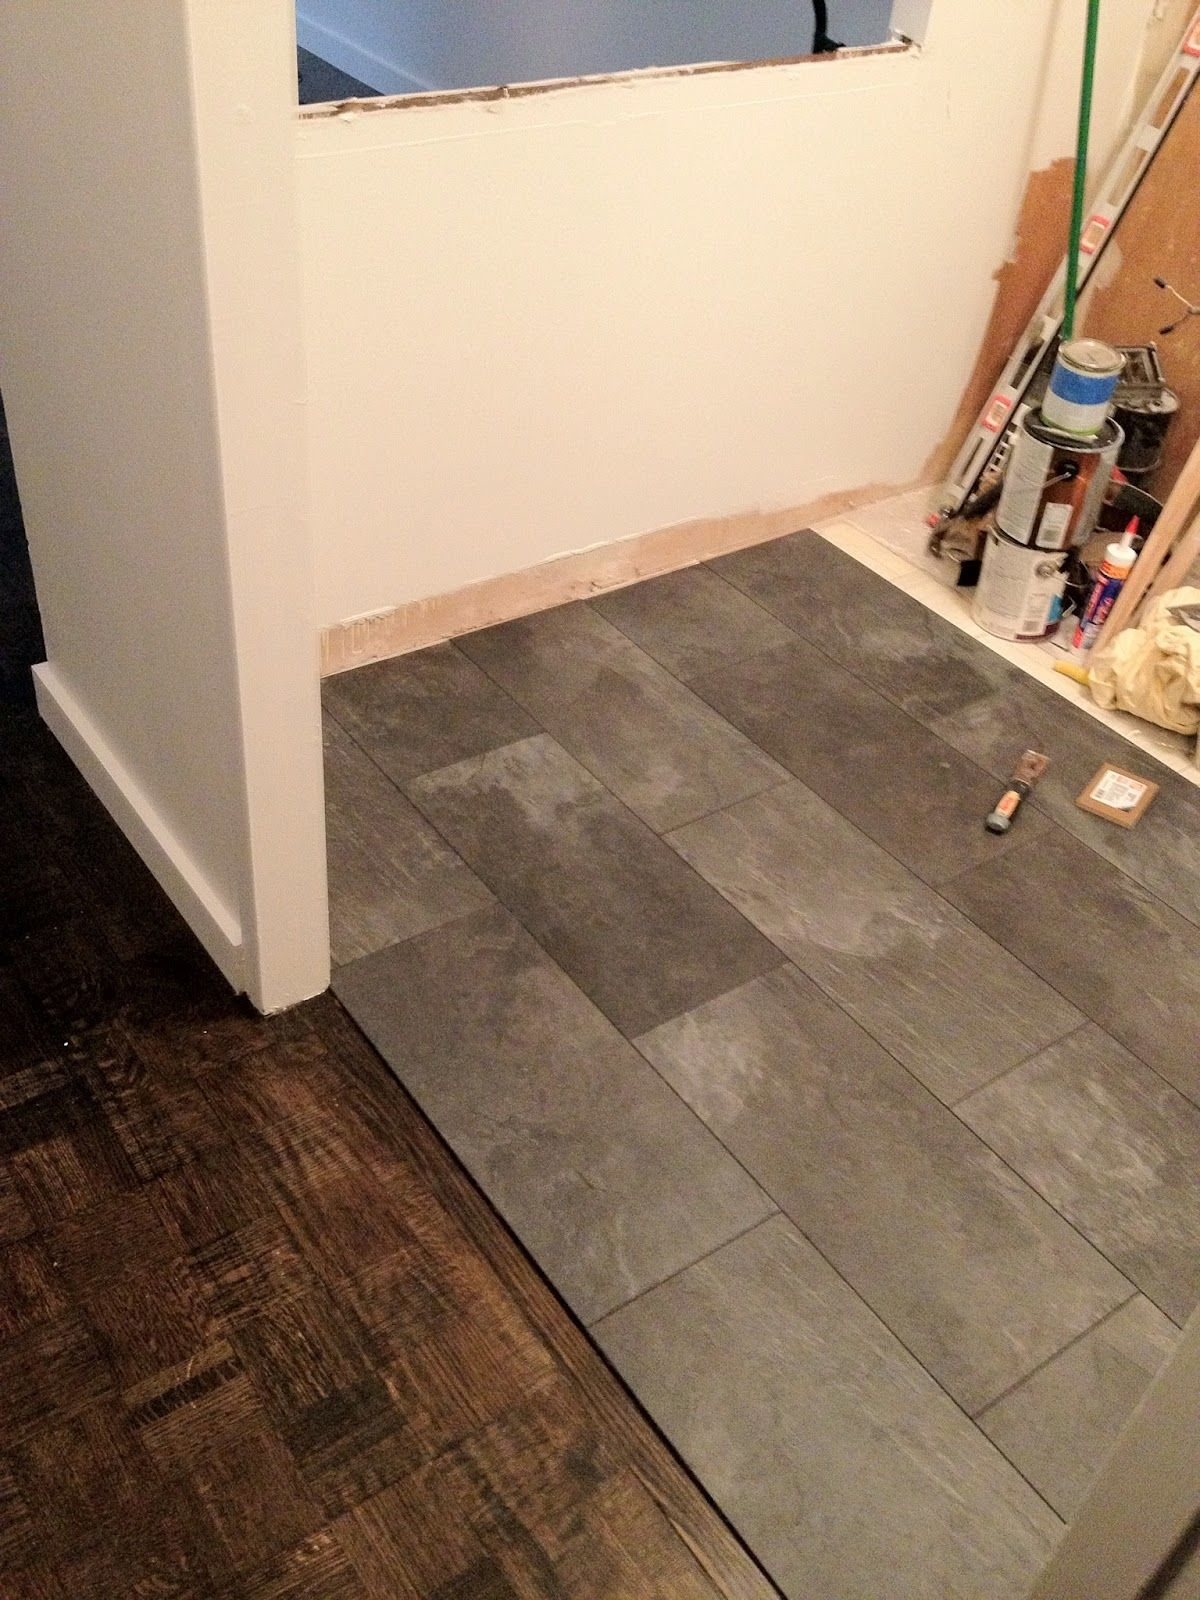 The Kitchen Floor Looks Like Slate But Its Really A Pergo Textured Laminate My Goal Was To Avoid Using Tile Guy And Take Full